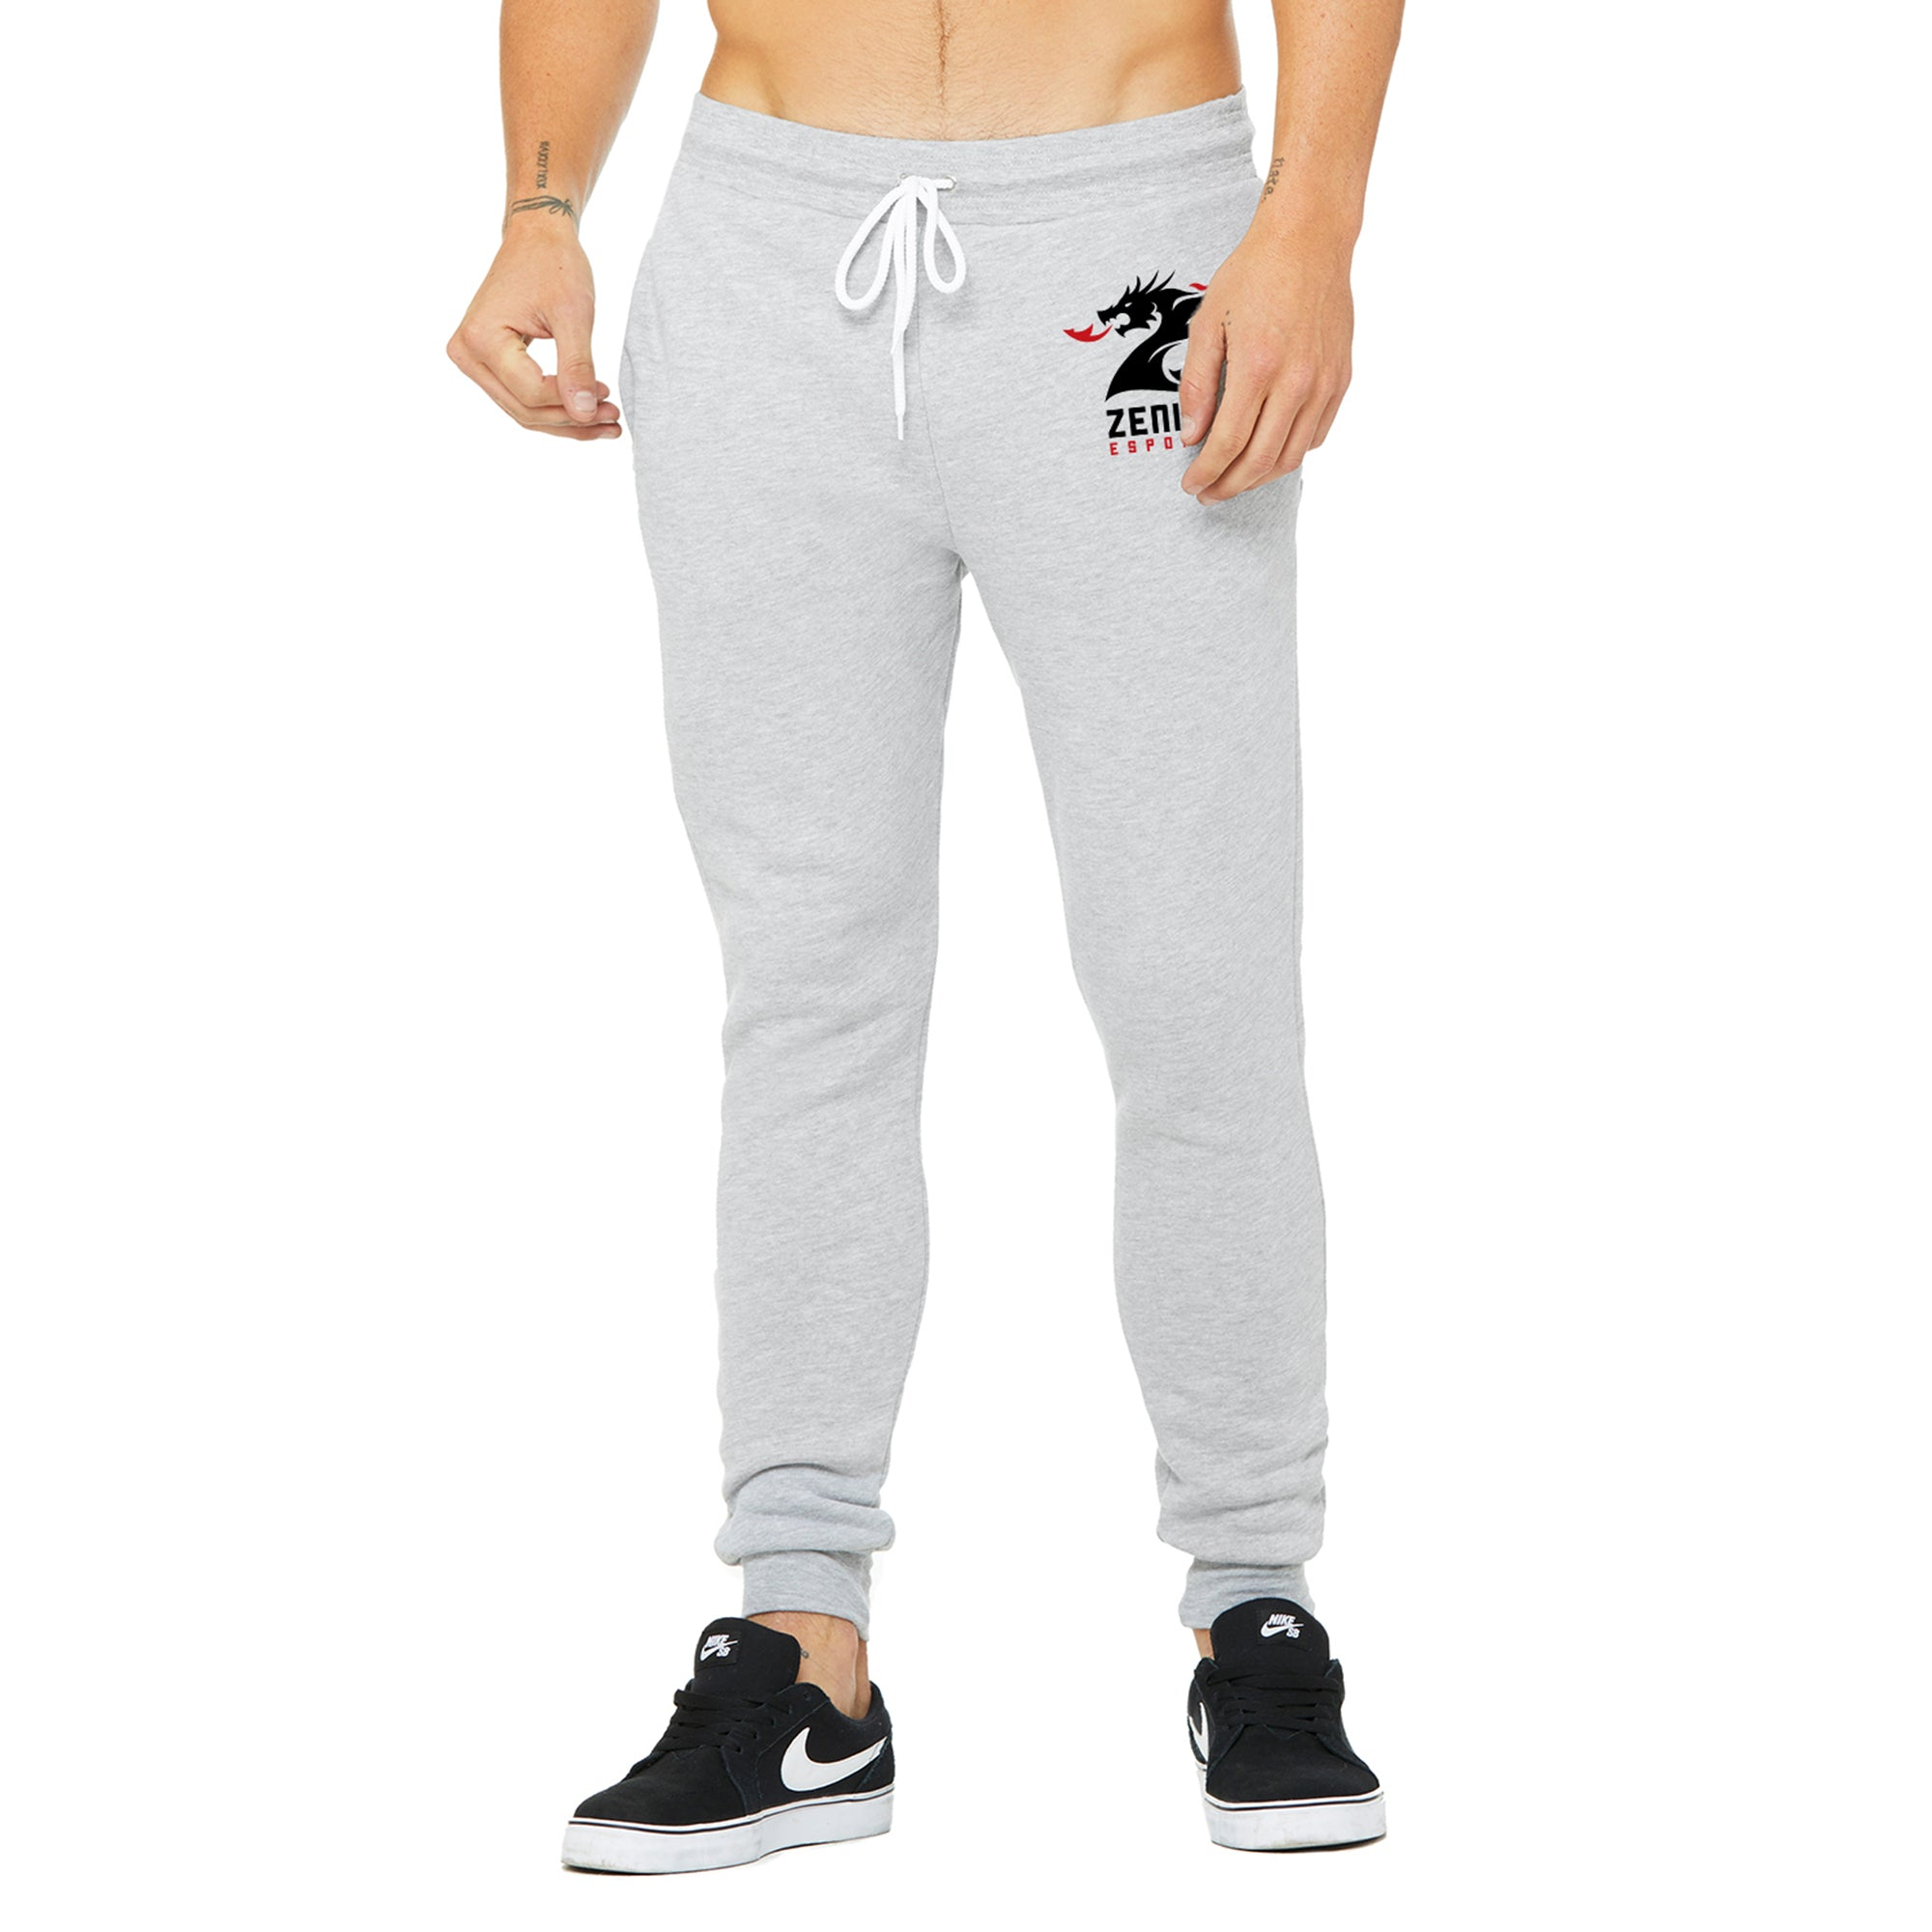 Zenith Classic Joggers